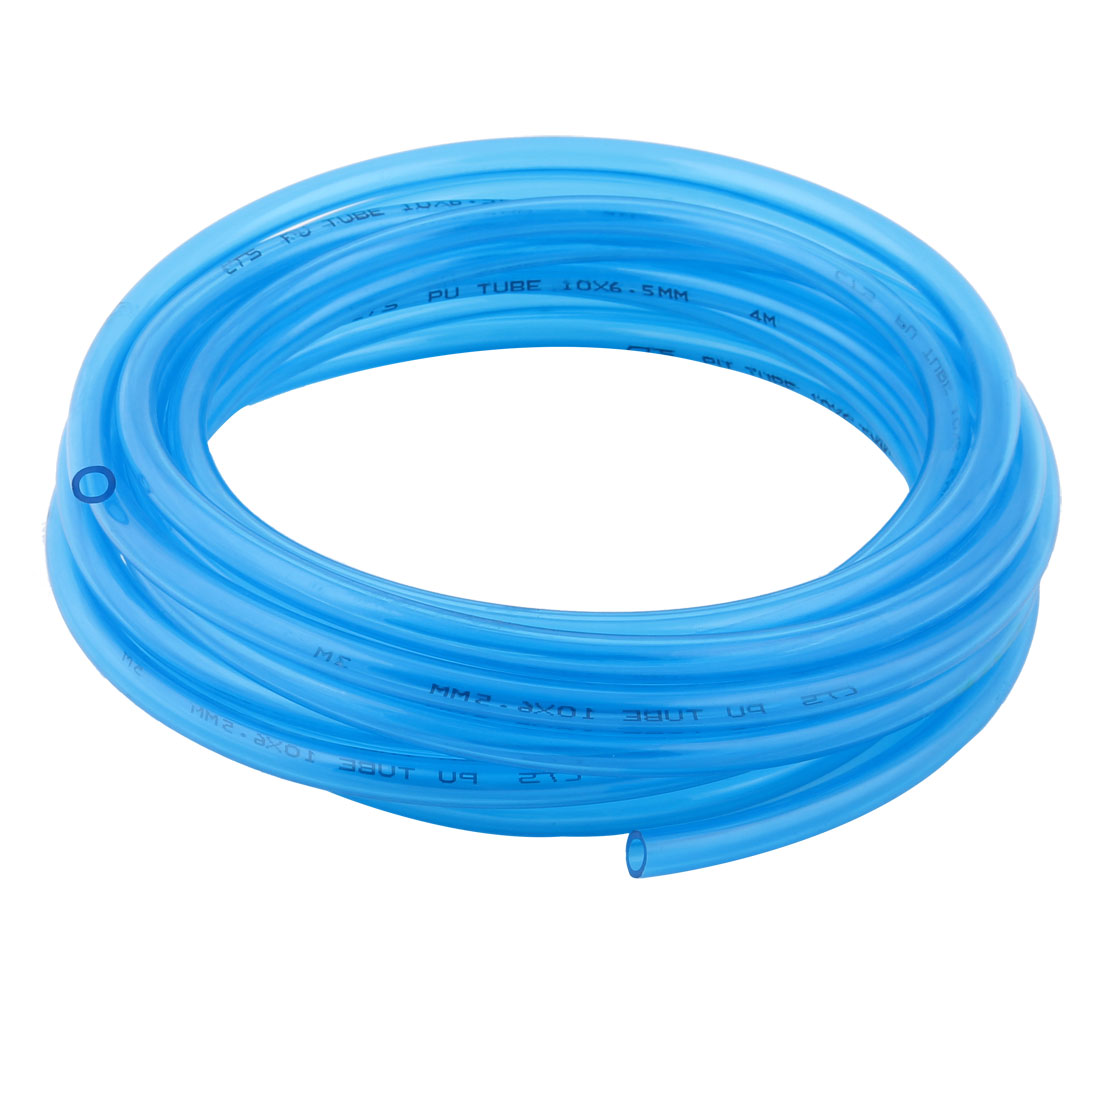 10mm x 6.5mm Hole PU Pneumatic Air Tube Airline Tubing Clear Blue 6.9M Long